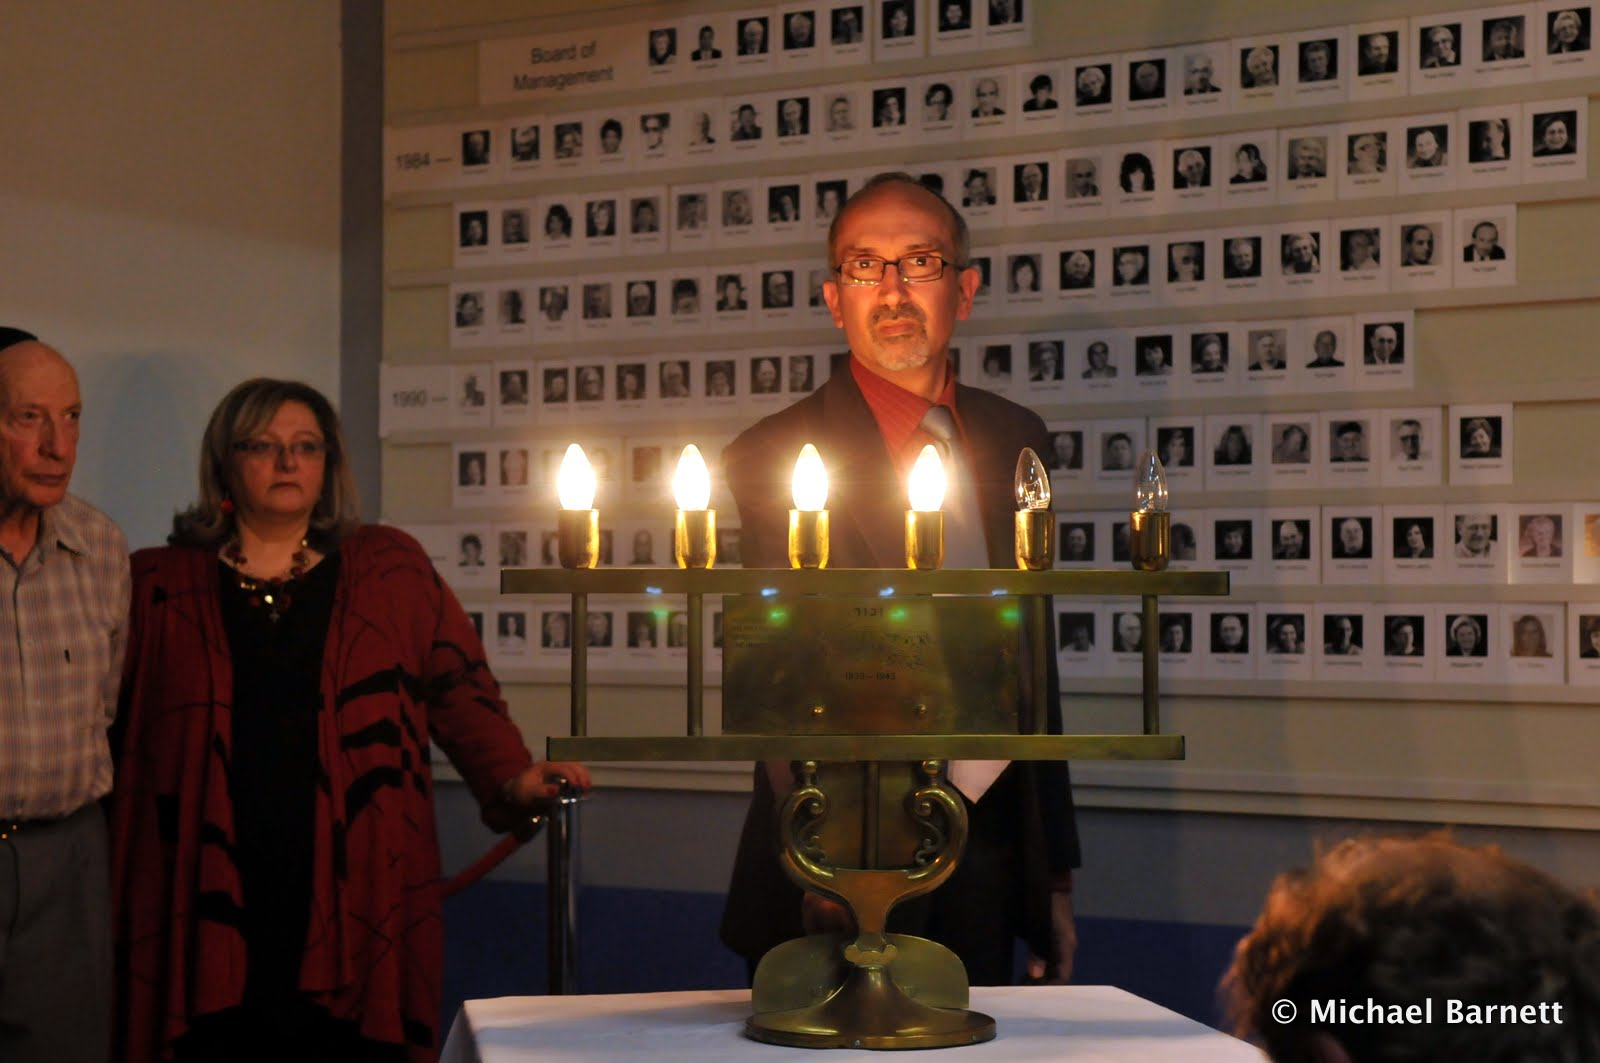 Colin Krycer lights a candle in memory of the homosexual victims of the Holocaust